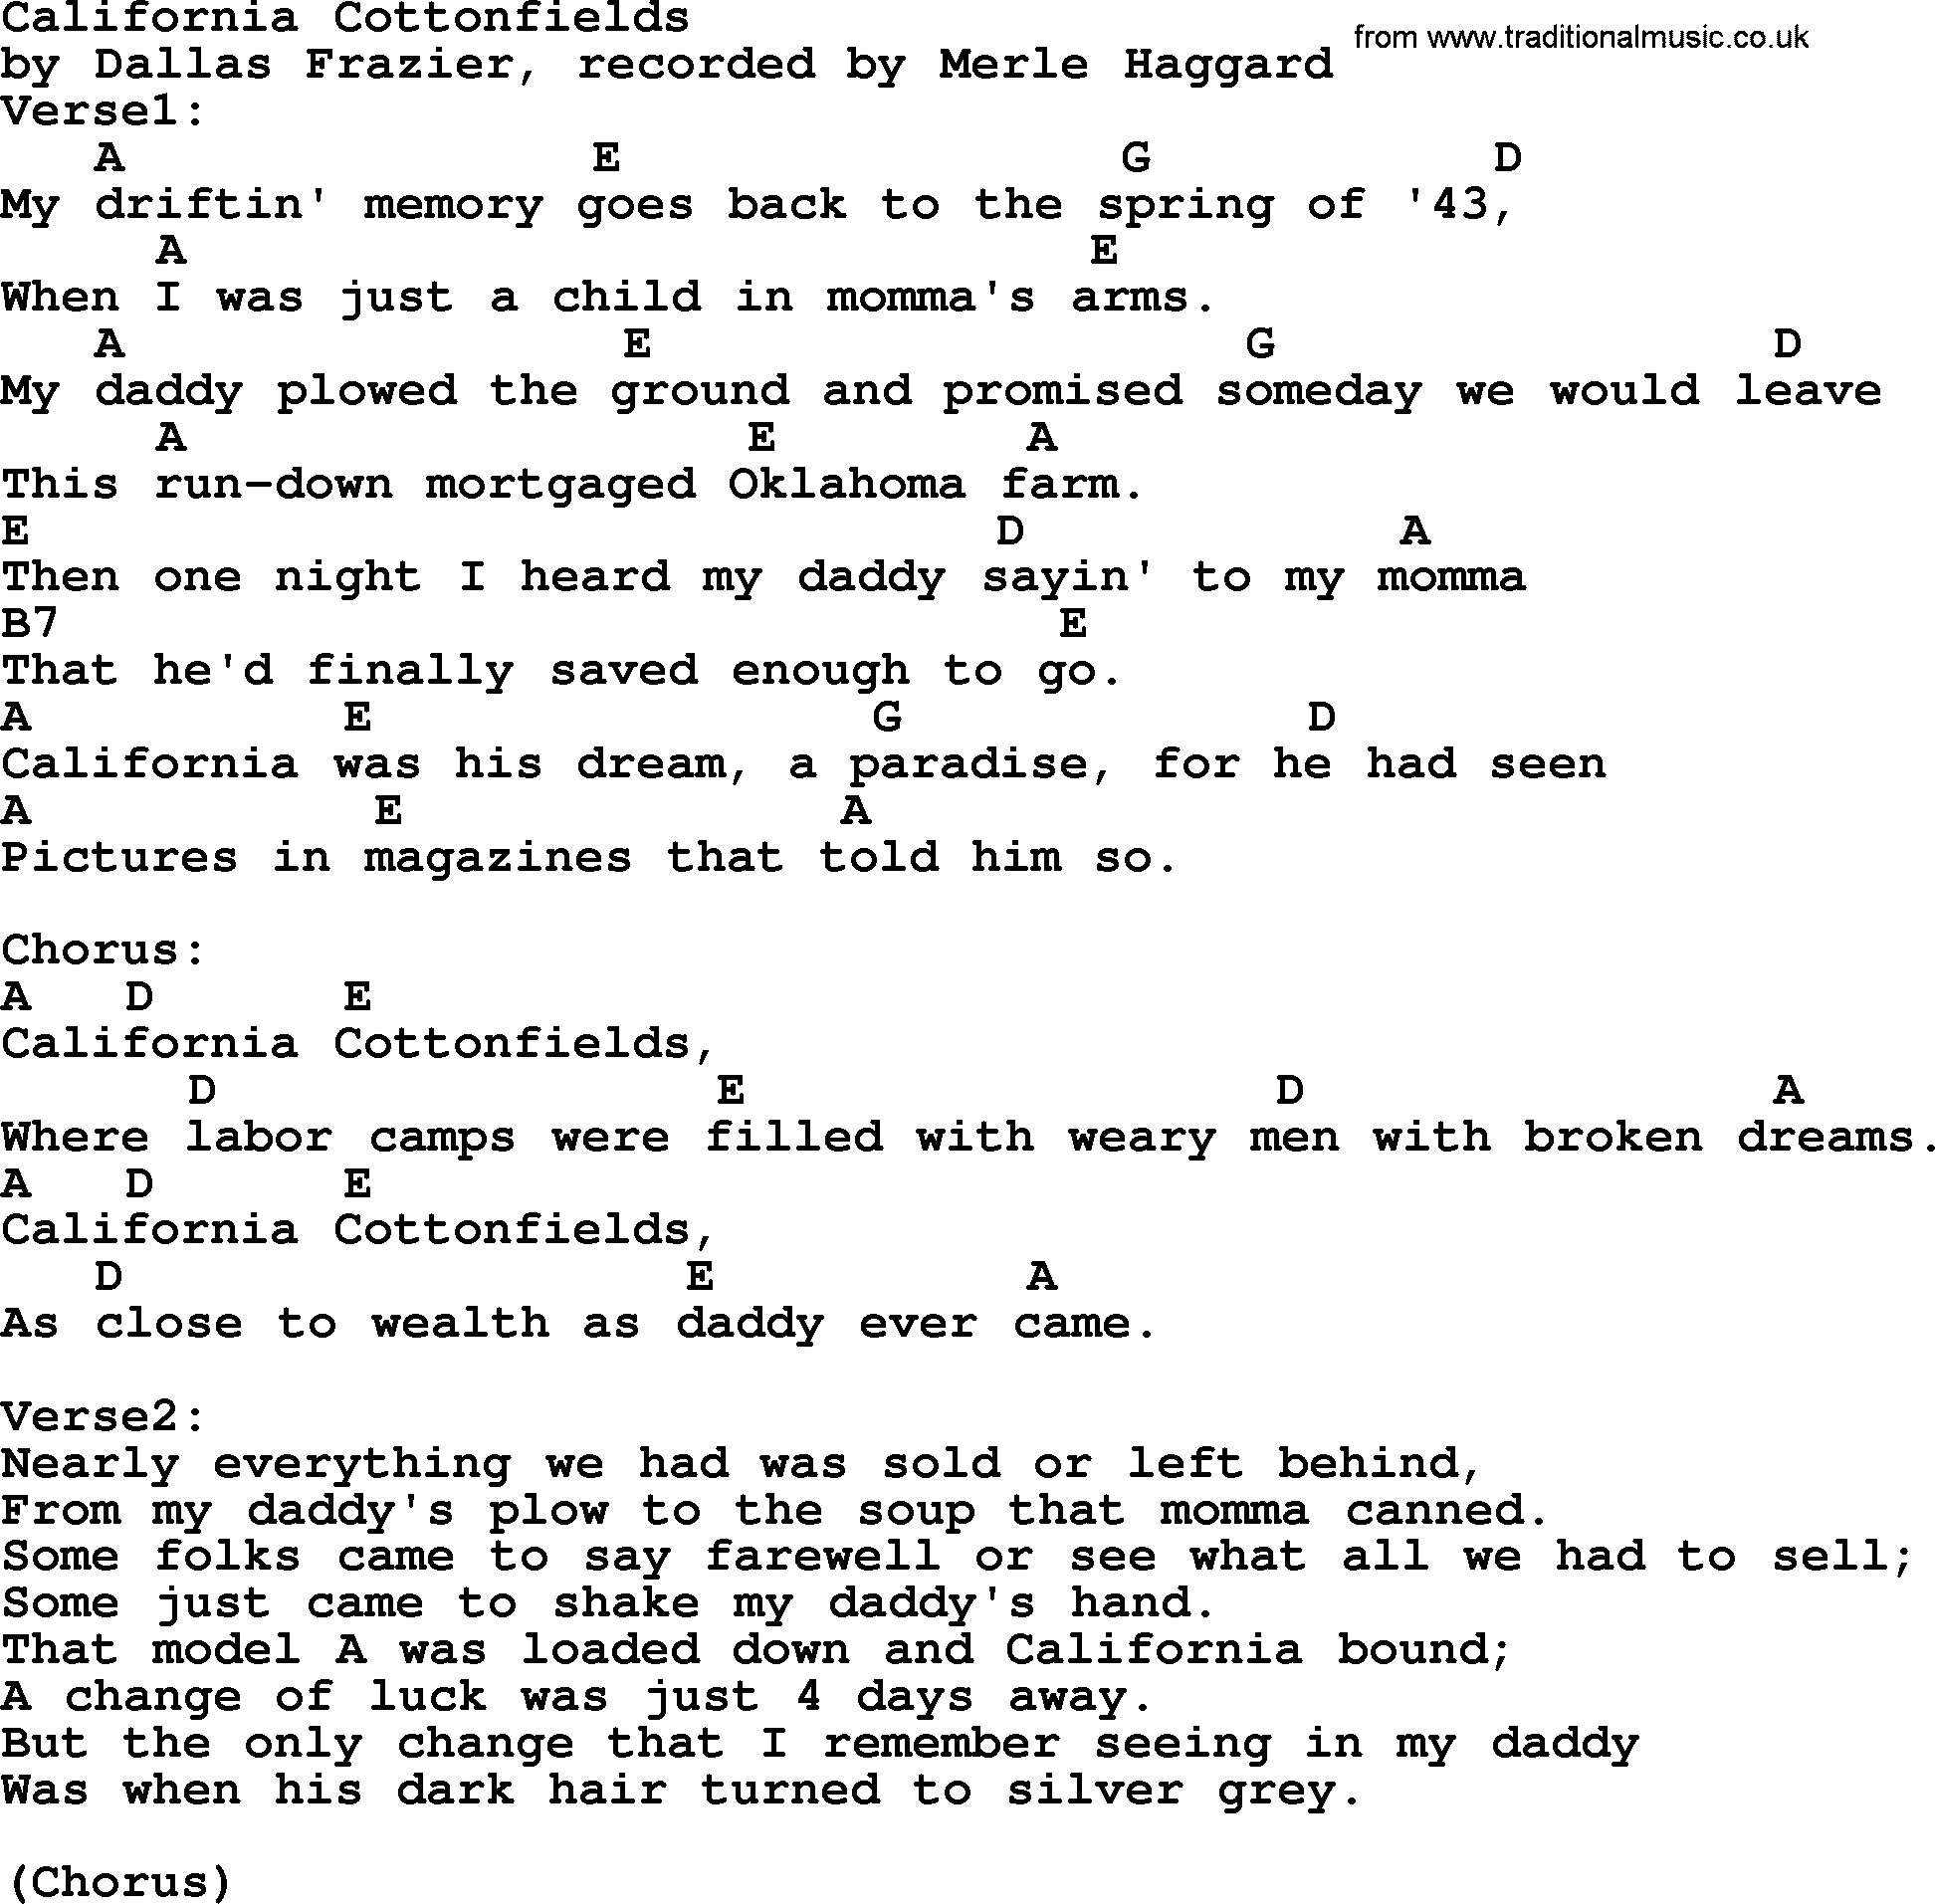 Merle haggard song california cottonfields lyrics and chords merle haggard song california cottonfields lyrics and chords hexwebz Images